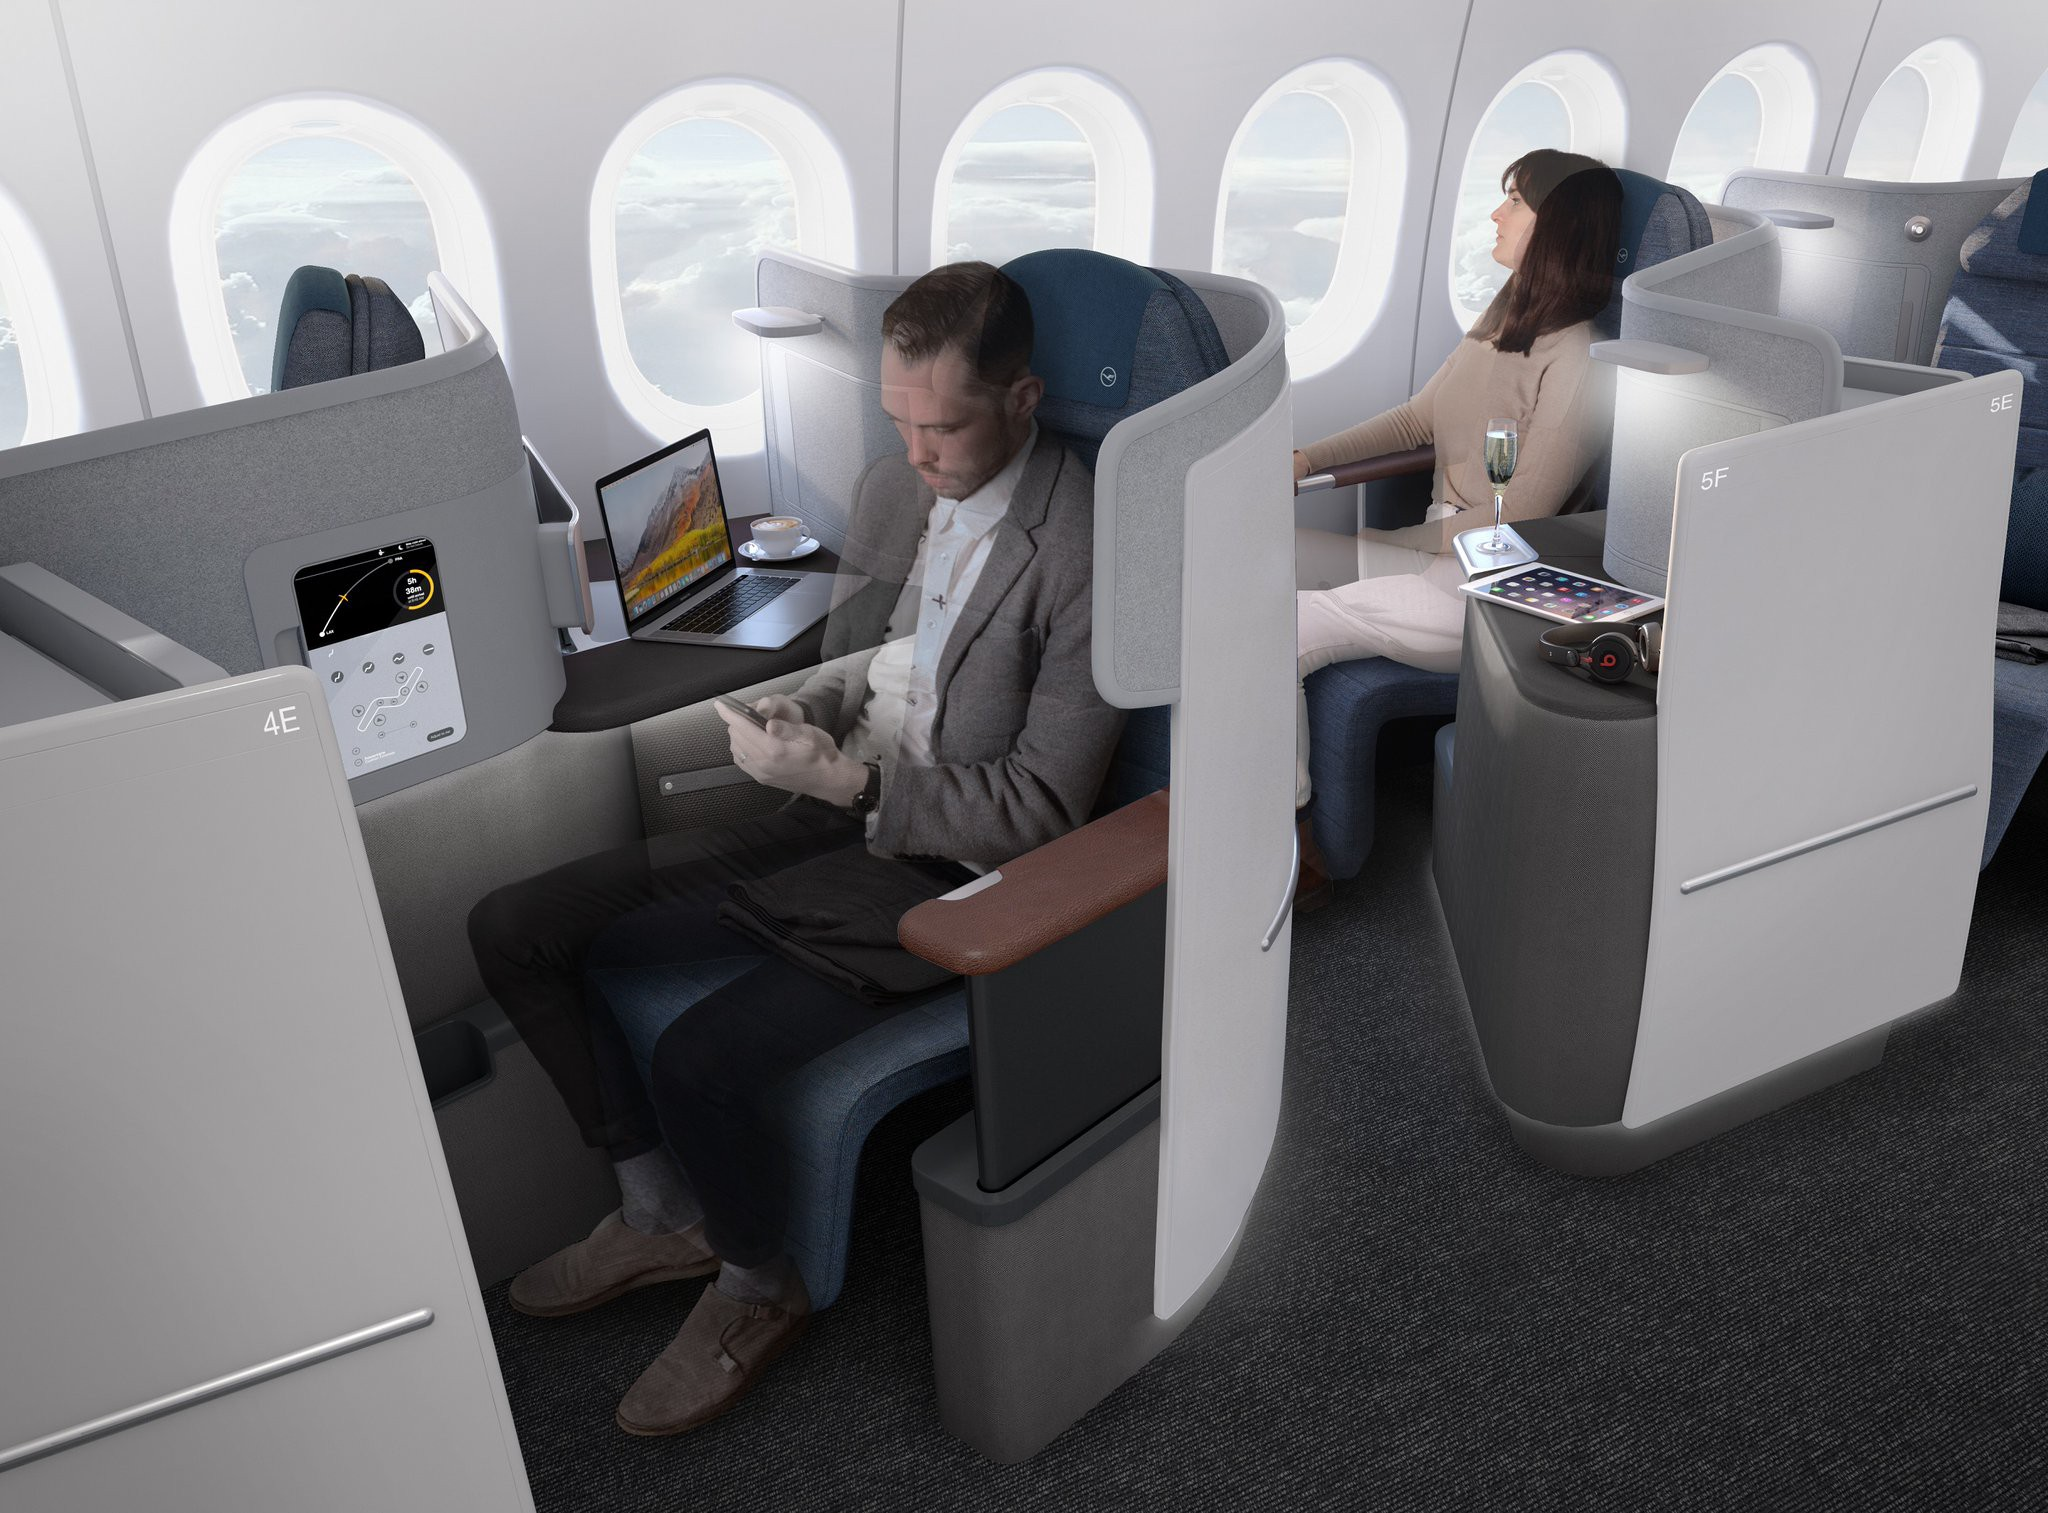 Enjoyable Lufthansa Shows Off New Recaro Cl6710 Business Class Seats Machost Co Dining Chair Design Ideas Machostcouk